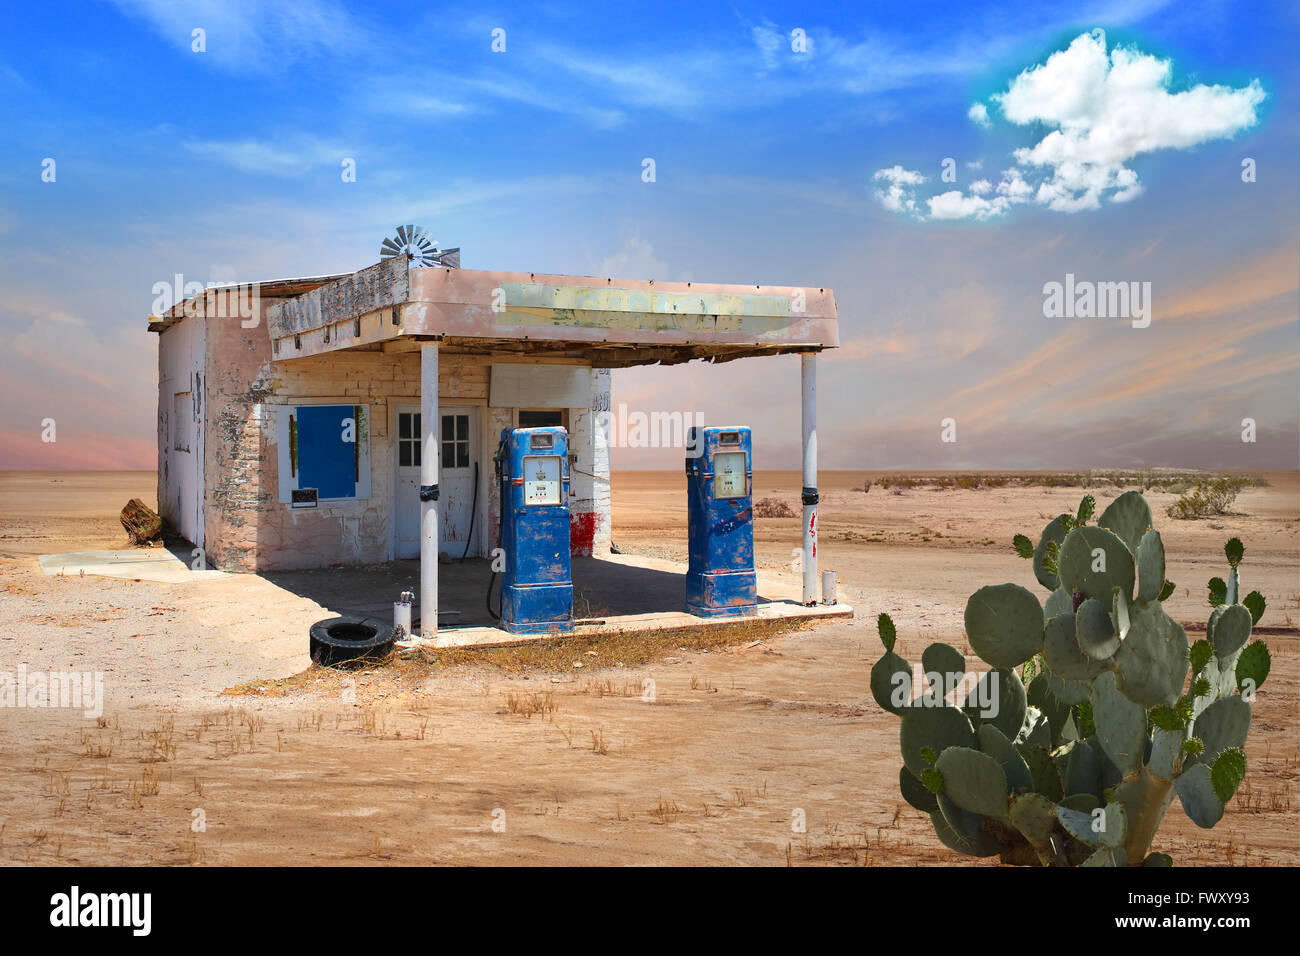 Abandoned Gas Station In Arizona Desert With Cactus In Foreground Stock Photo Alamy